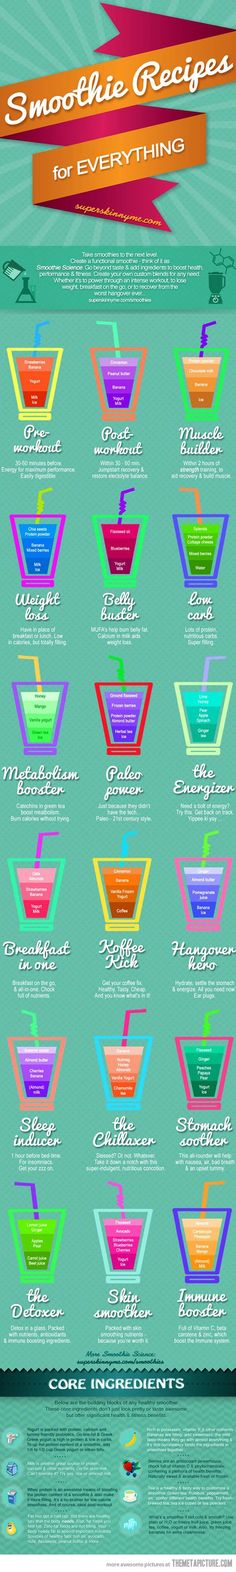 Healthy Smoothie Recipes For Everything